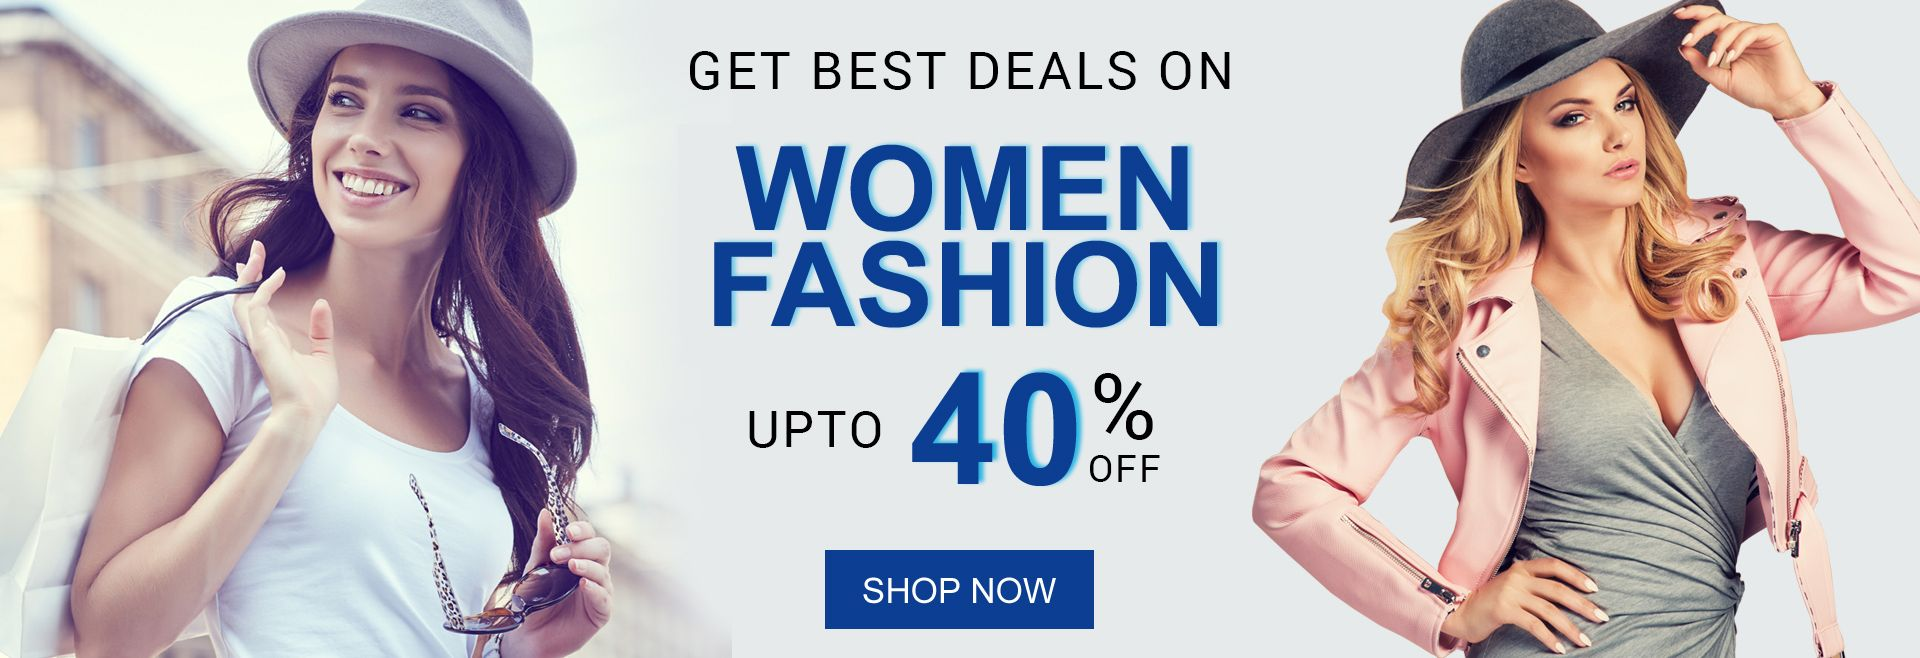 best deal on women fashion banner